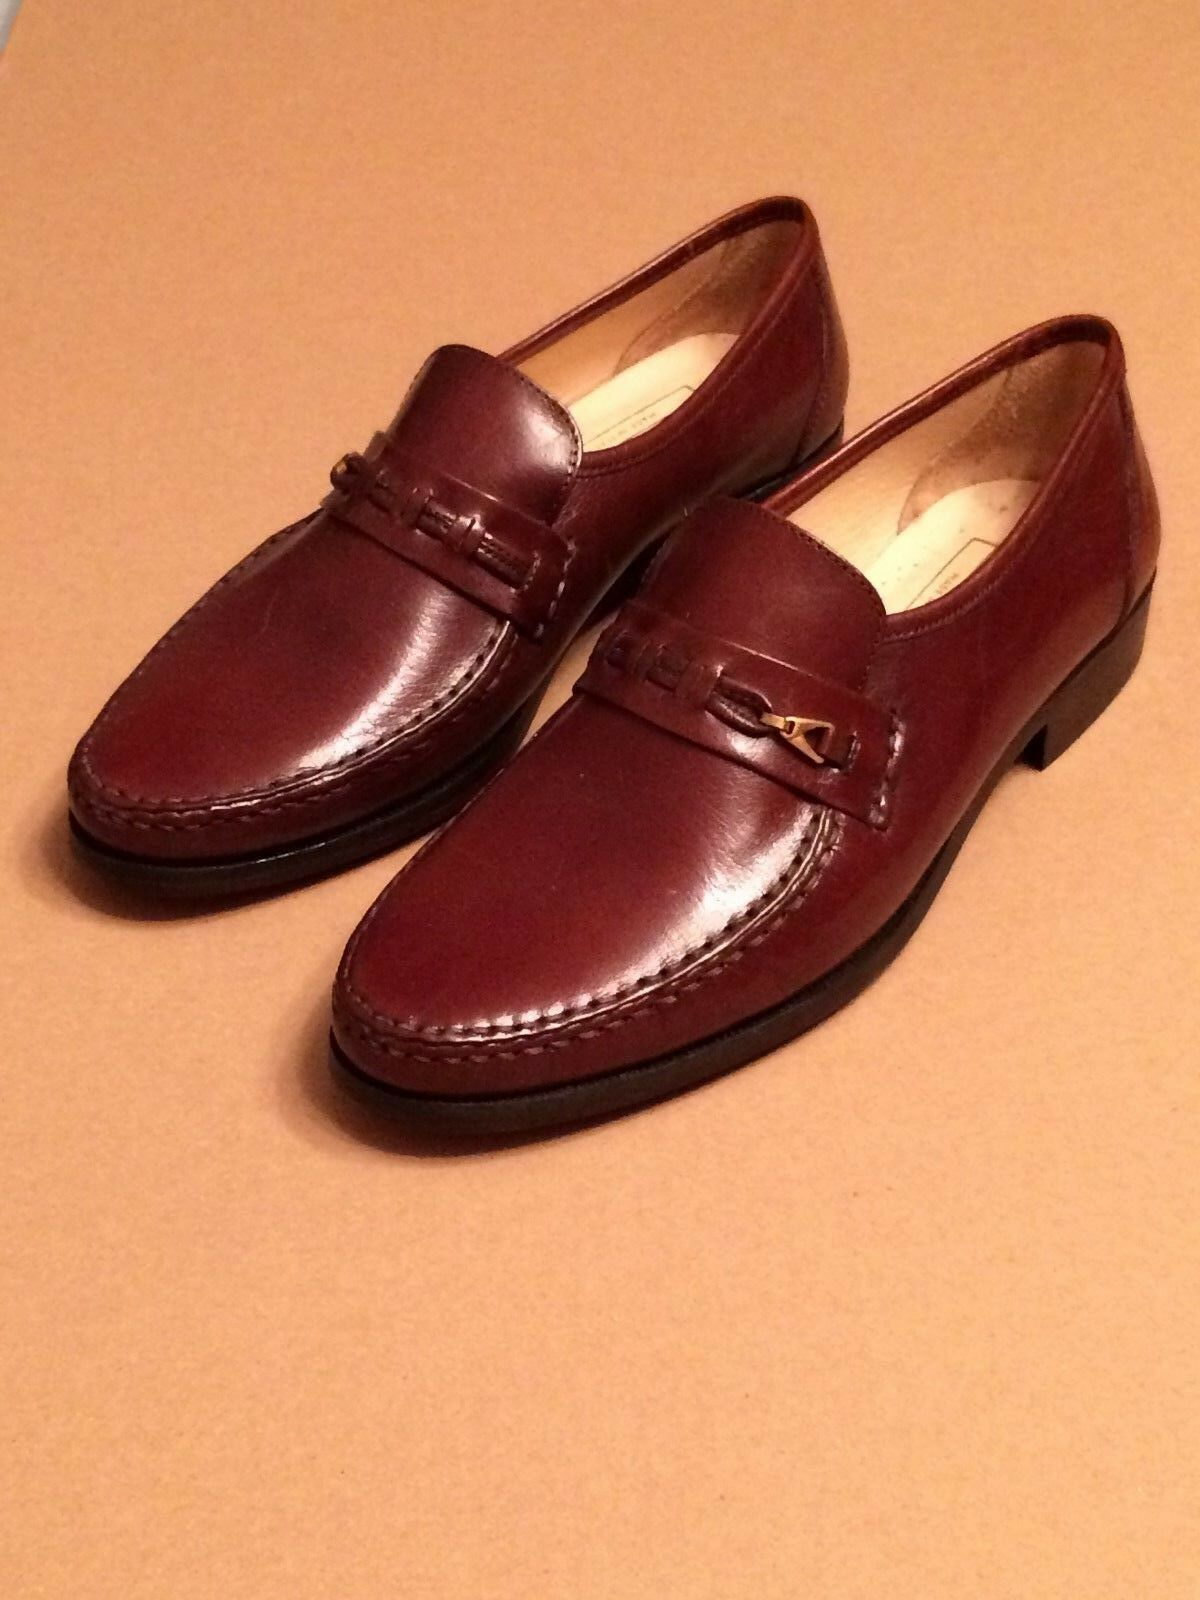 shoes, Brown leather _ Debenhams Mens Store _ Size 42